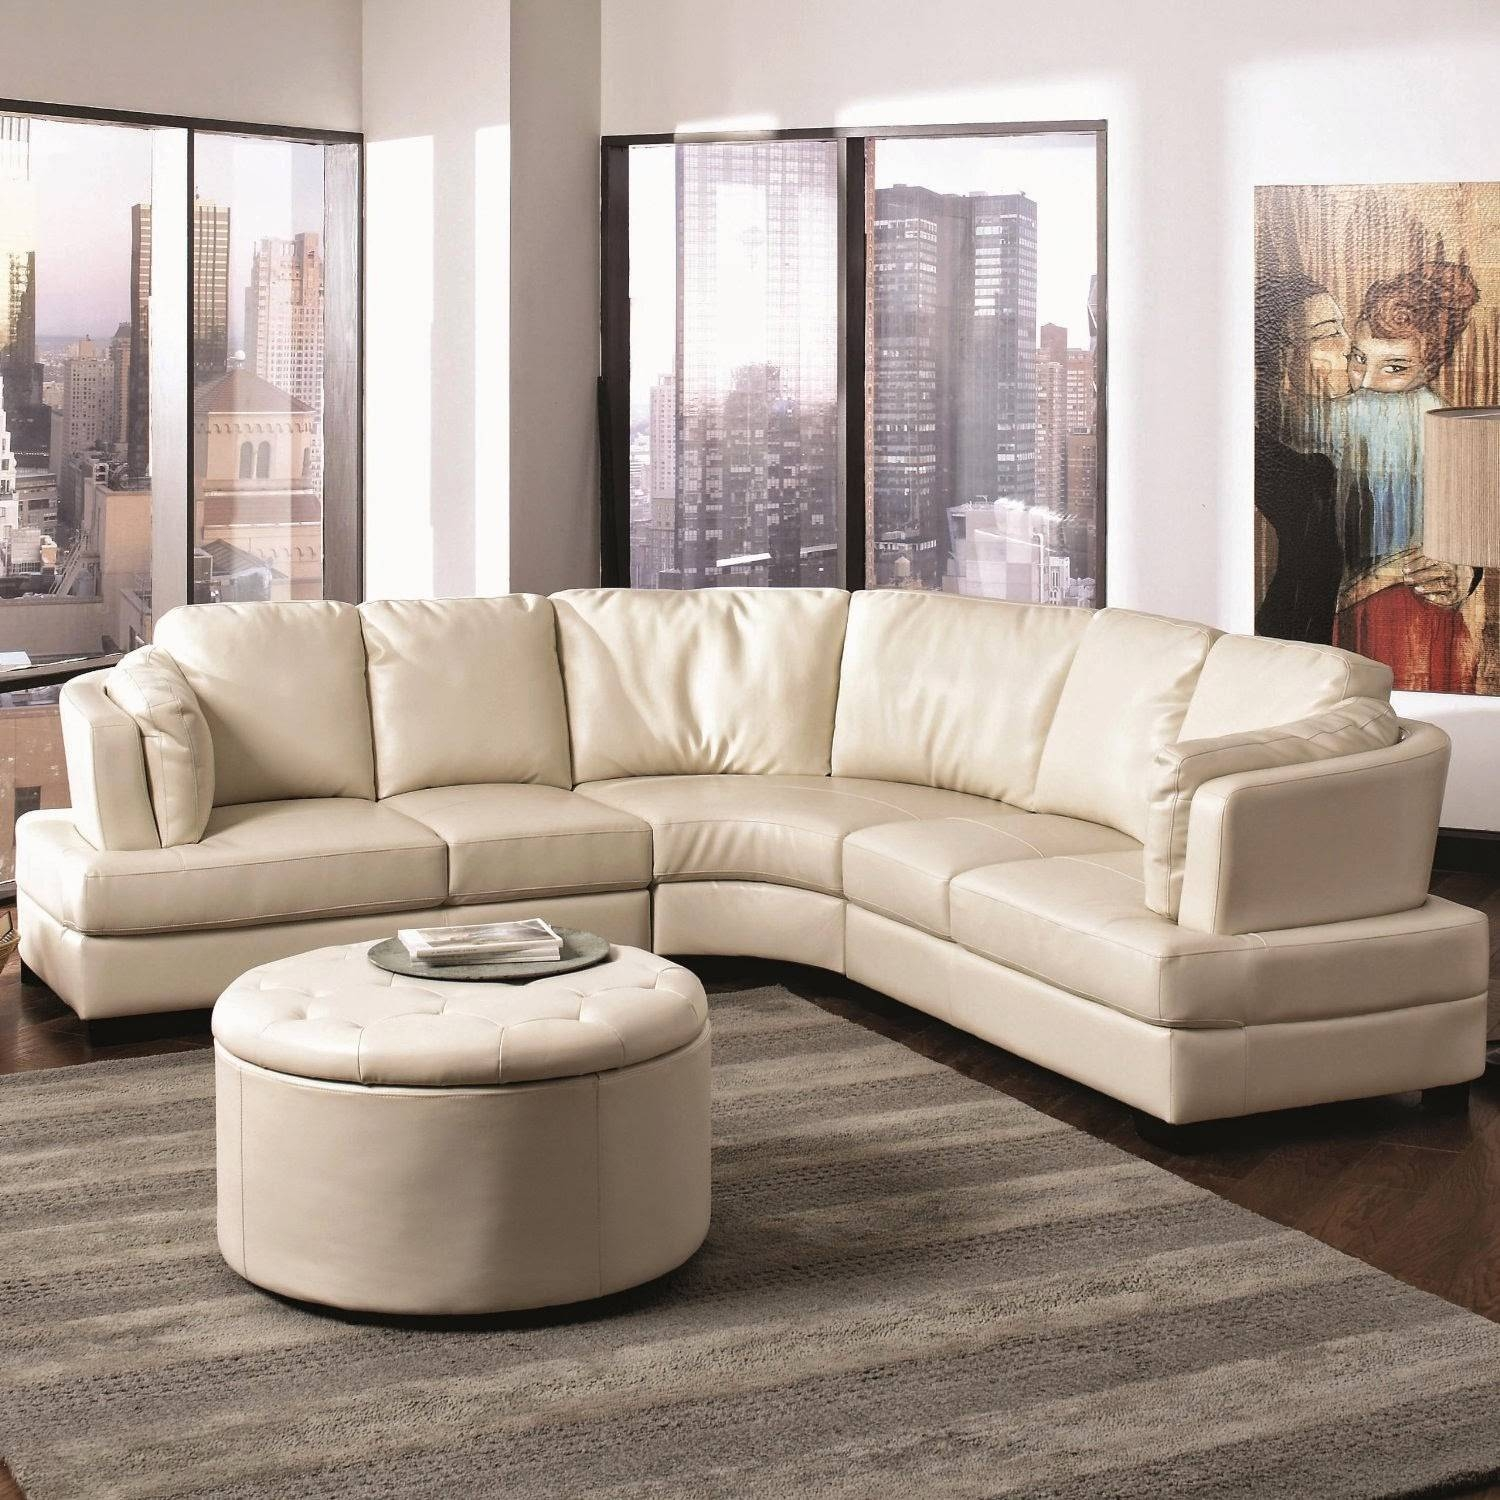 Furniture: Appealing Curved Sectional Sofa For Furniture In Your in Circular Sectional Sofa (Image 12 of 30)